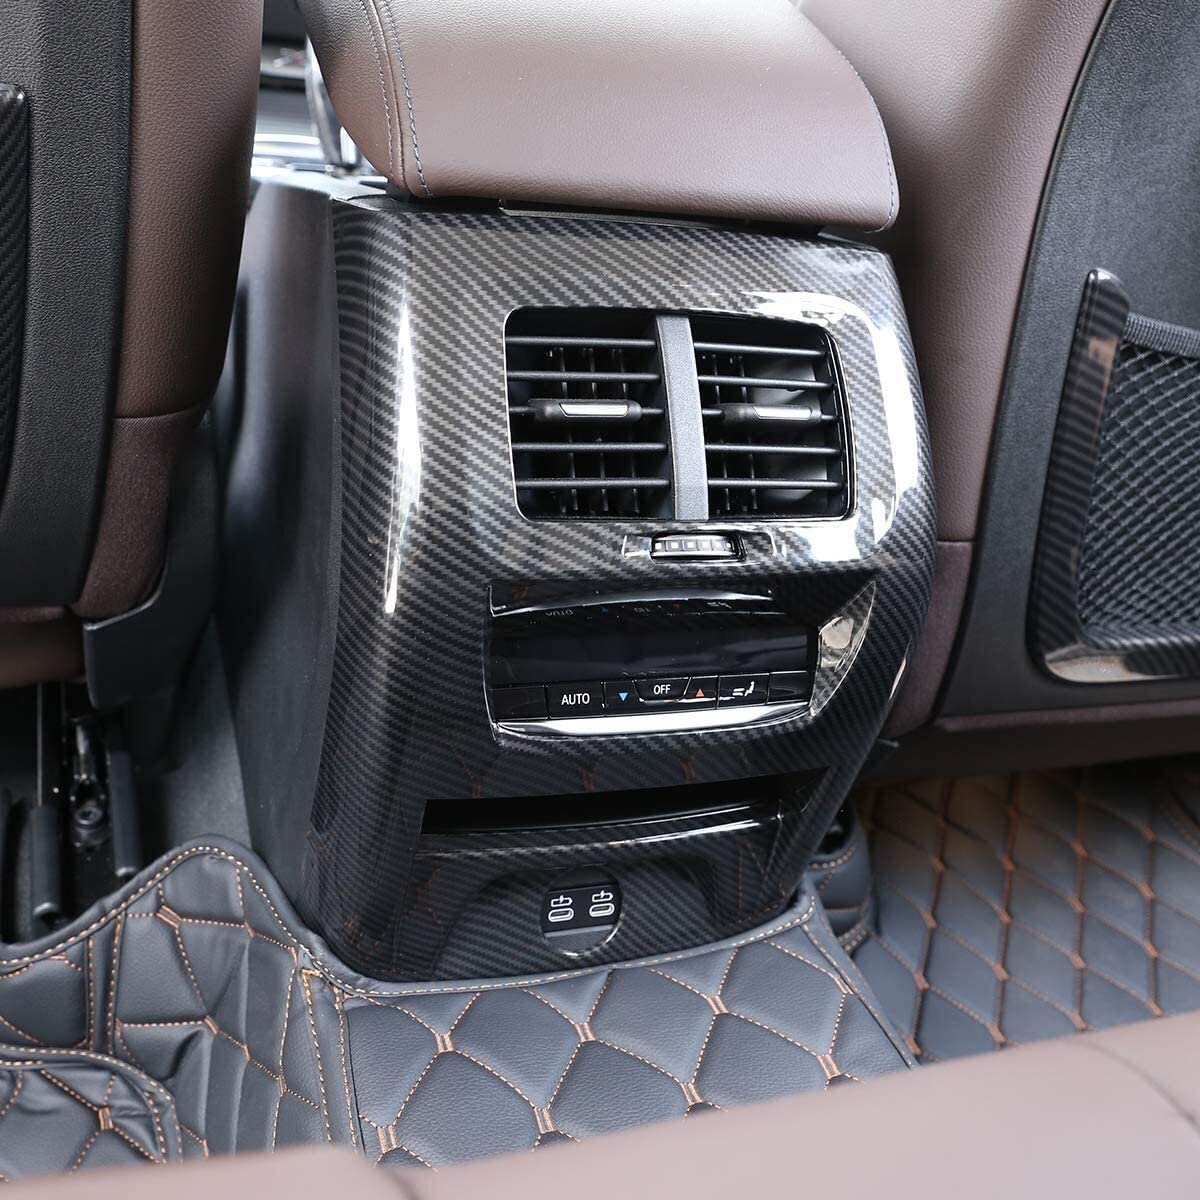 Apply Max 42% OFF New sales to Fiber Style ABS Auto Air Car Caondition Accessories Out